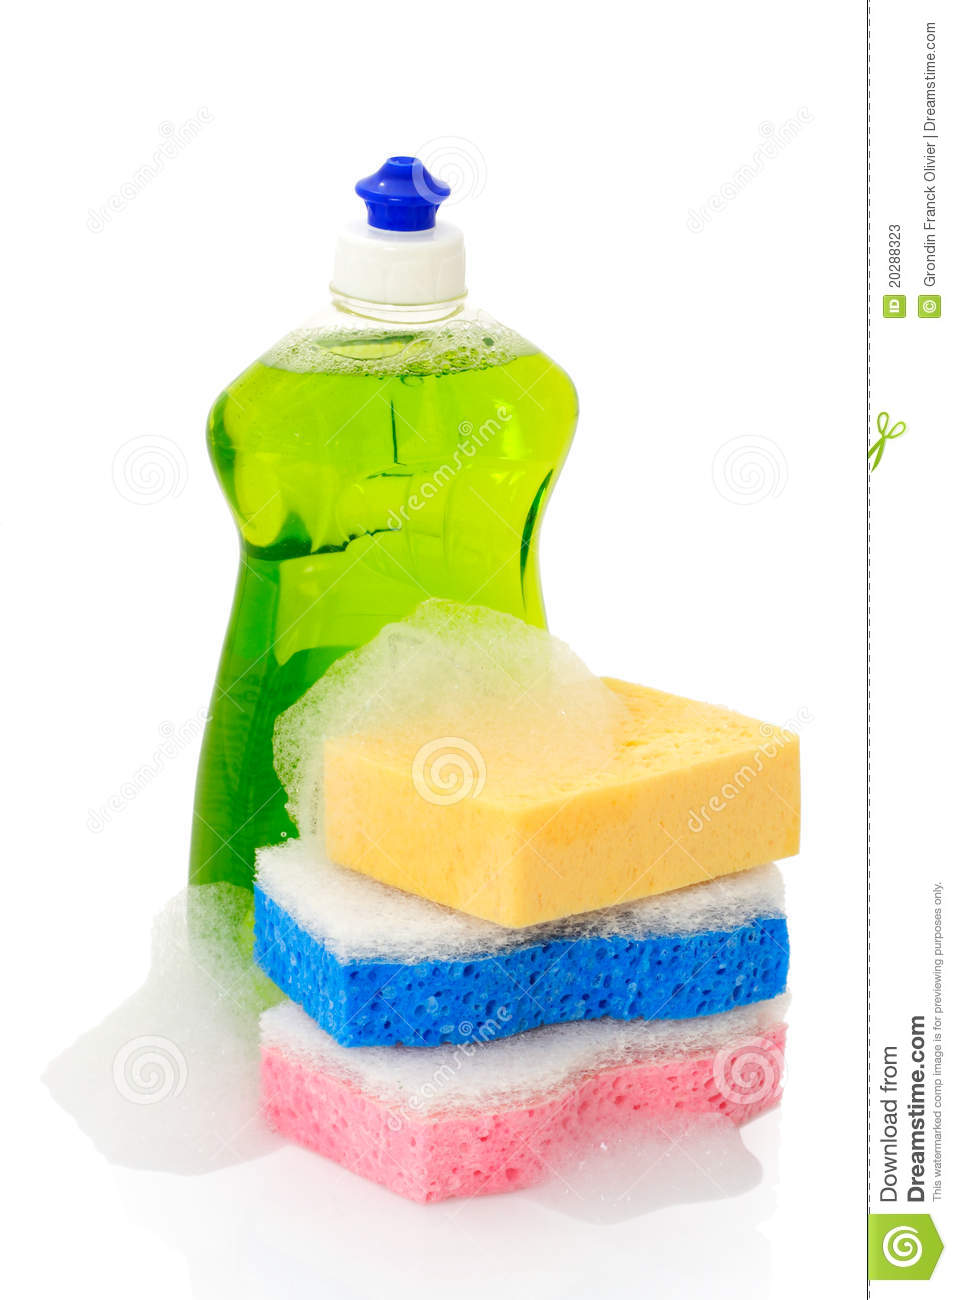 Dish Soap And Sponges Stock Photos - Image: 20288323